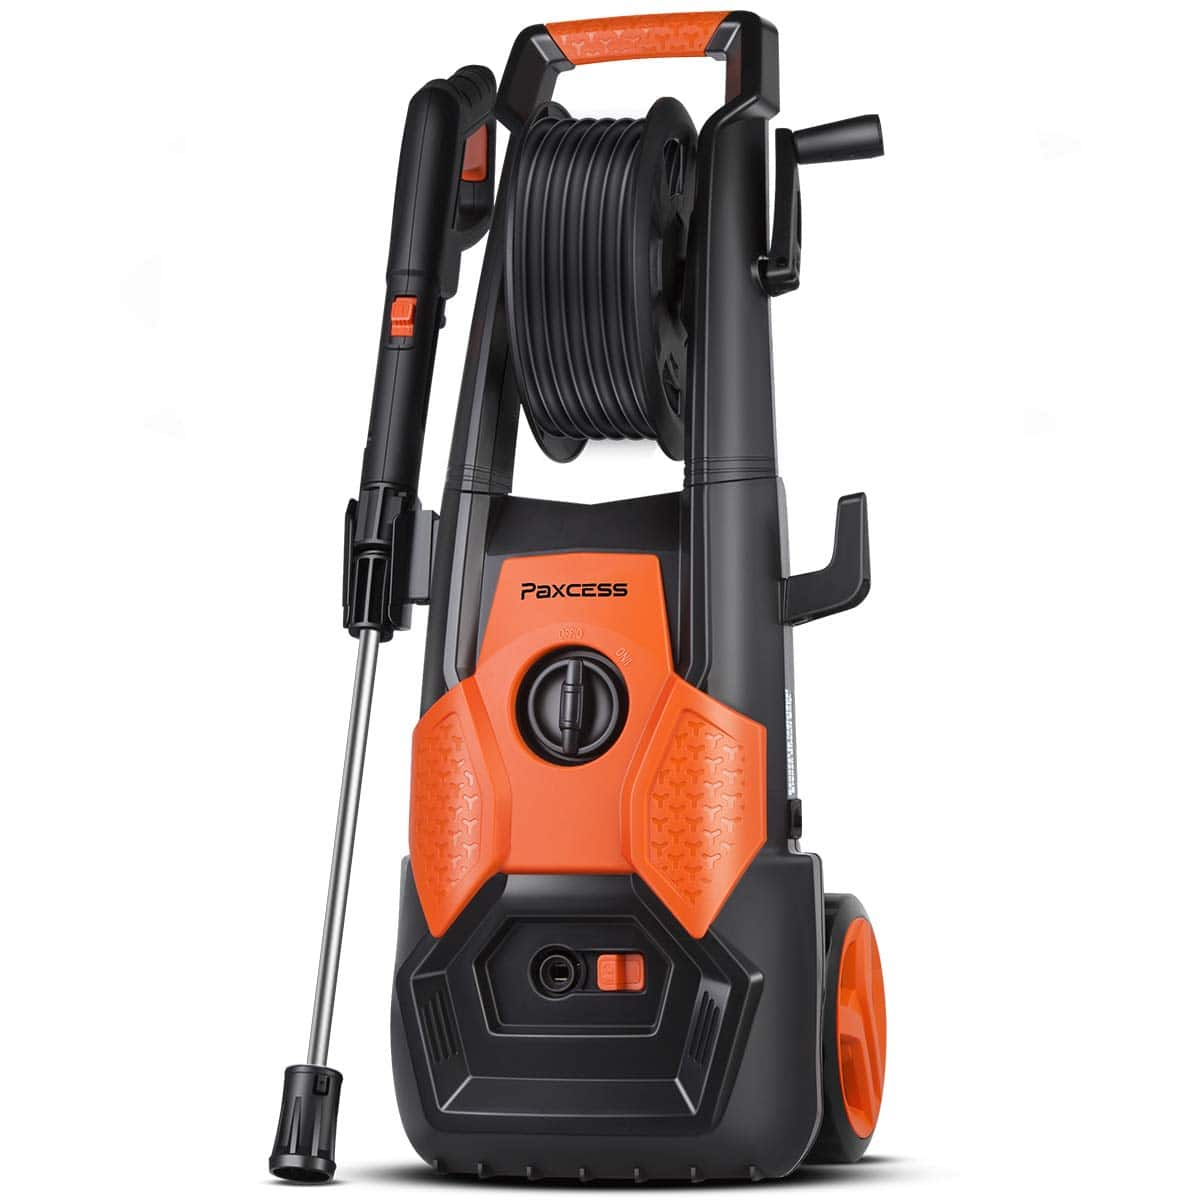 PAXCESS Electric Pressure Washer, 2150 PSI 1 85 GPM $127 5